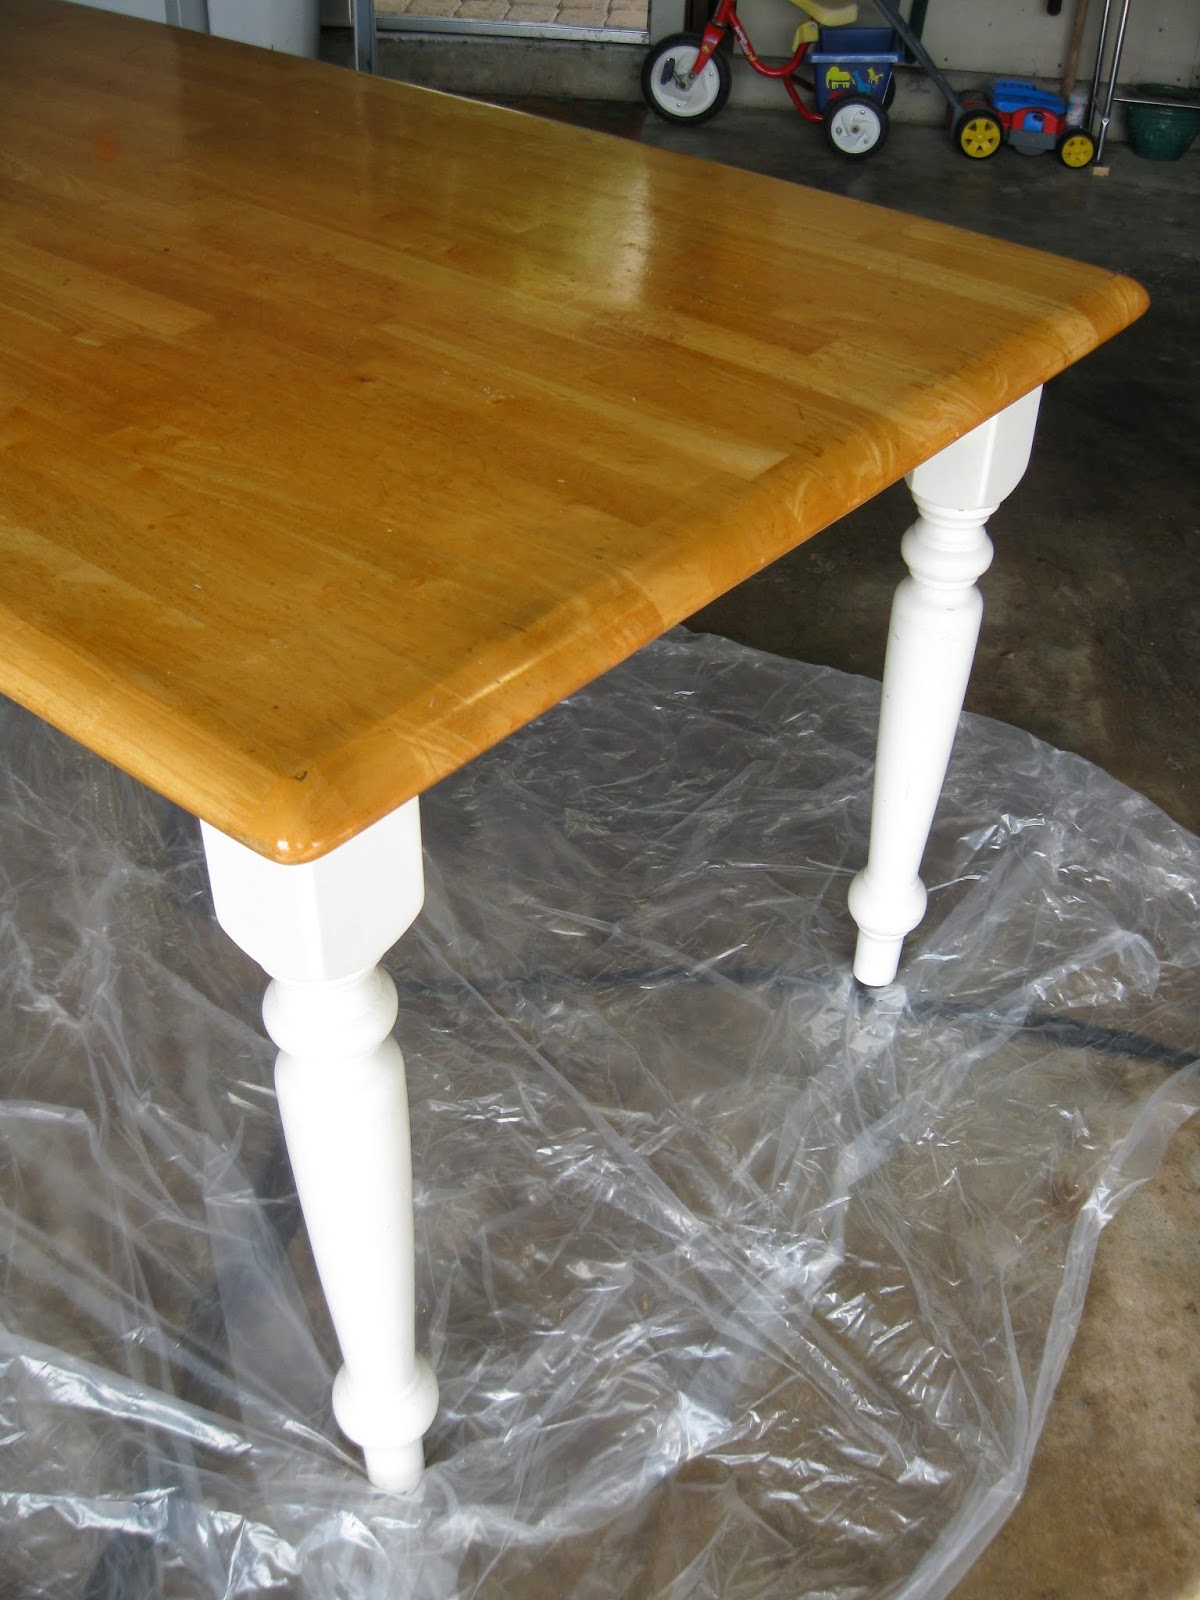 The Nurtured Nest: How To Turn An Ugly, Generic Kitchen Table Into A ...